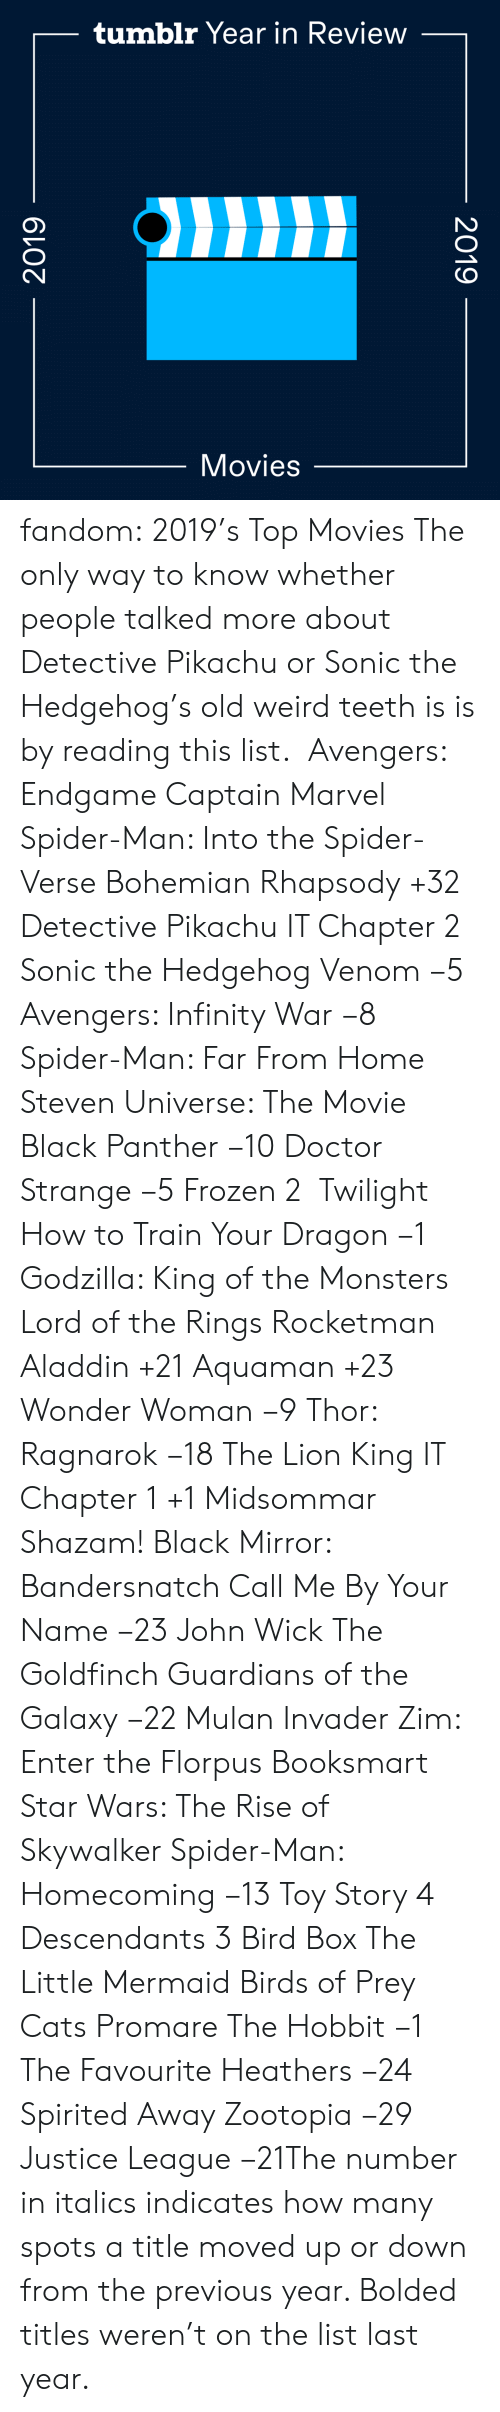 Birds: tumblr Year in Review  Movies  2019  2019 fandom:  2019's Top Movies  The only way to know whether people talked more about Detective Pikachu or Sonic the Hedgehog's old weird teeth is is by reading this list.   Avengers: Endgame  Captain Marvel  Spider-Man: Into the Spider-Verse  Bohemian Rhapsody +32  Detective Pikachu  IT Chapter 2  Sonic the Hedgehog  Venom −5  Avengers: Infinity War −8  Spider-Man: Far From Home  Steven Universe: The Movie  Black Panther −10  Doctor Strange −5  Frozen 2   Twilight  How to Train Your Dragon −1  Godzilla: King of the Monsters  Lord of the Rings  Rocketman  Aladdin +21  Aquaman +23  Wonder Woman −9  Thor: Ragnarok −18  The Lion King  IT Chapter 1 +1  Midsommar  Shazam!  Black Mirror: Bandersnatch  Call Me By Your Name −23  John Wick  The Goldfinch  Guardians of the Galaxy −22  Mulan  Invader Zim: Enter the Florpus  Booksmart  Star Wars: The Rise of Skywalker  Spider-Man: Homecoming −13  Toy Story 4  Descendants 3  Bird Box  The Little Mermaid  Birds of Prey  Cats  Promare  The Hobbit −1  The Favourite  Heathers −24  Spirited Away  Zootopia −29 Justice League −21The number in italics indicates how many spots a title moved up or down from the previous year. Bolded titles weren't on the list last year.